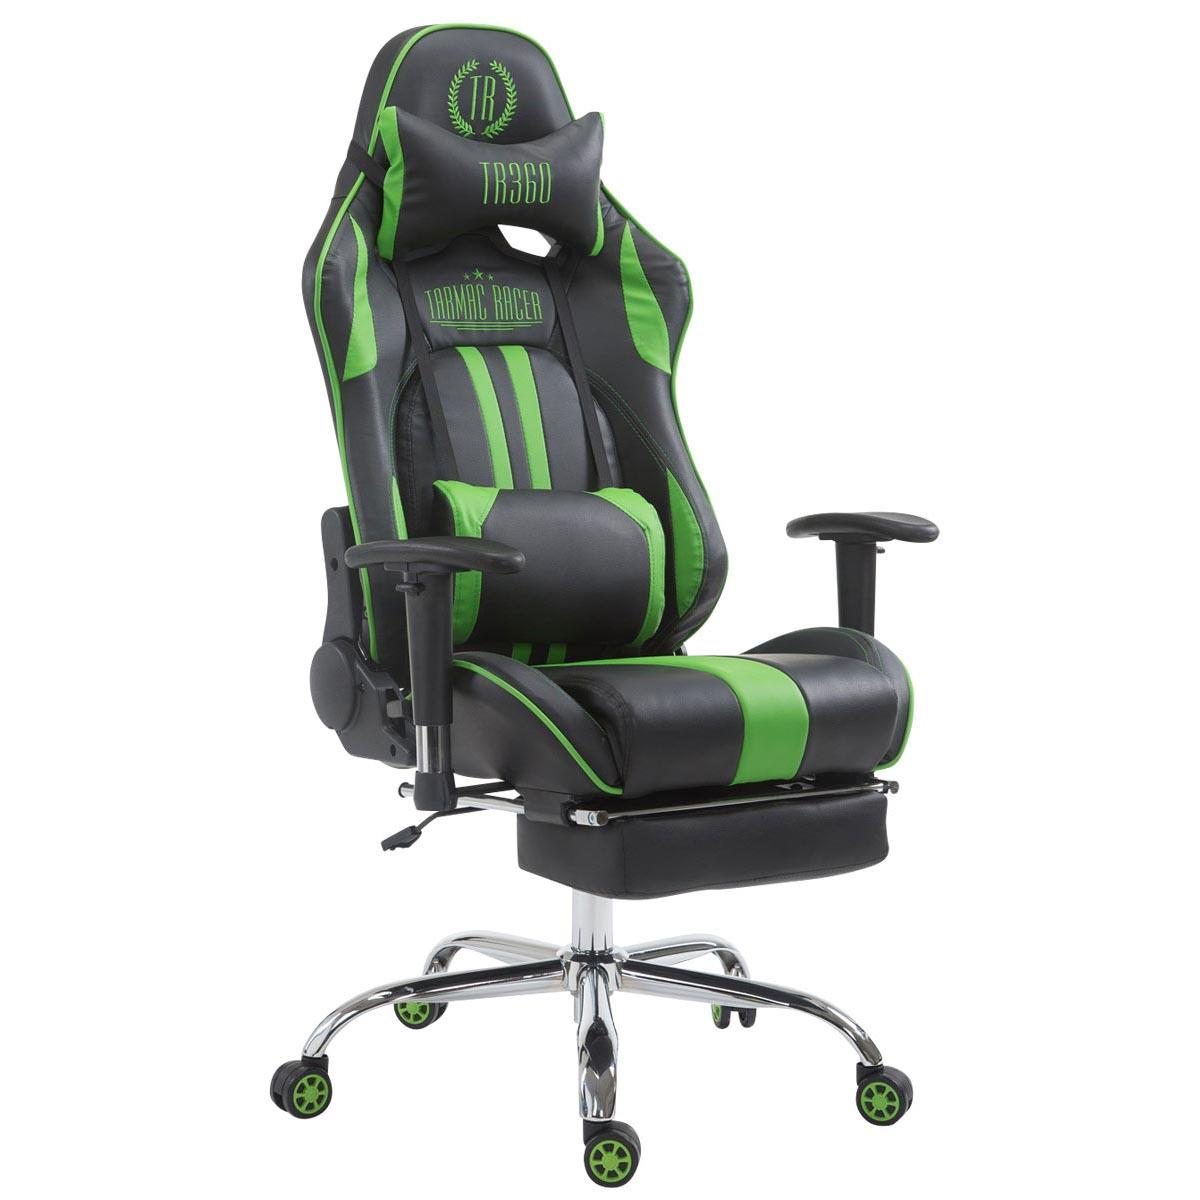 Silla Gaming LOGAN con Reposapiés, Respaldo Reclinable, Cojines Incluidos, Base de Metal, En Negro/Verde